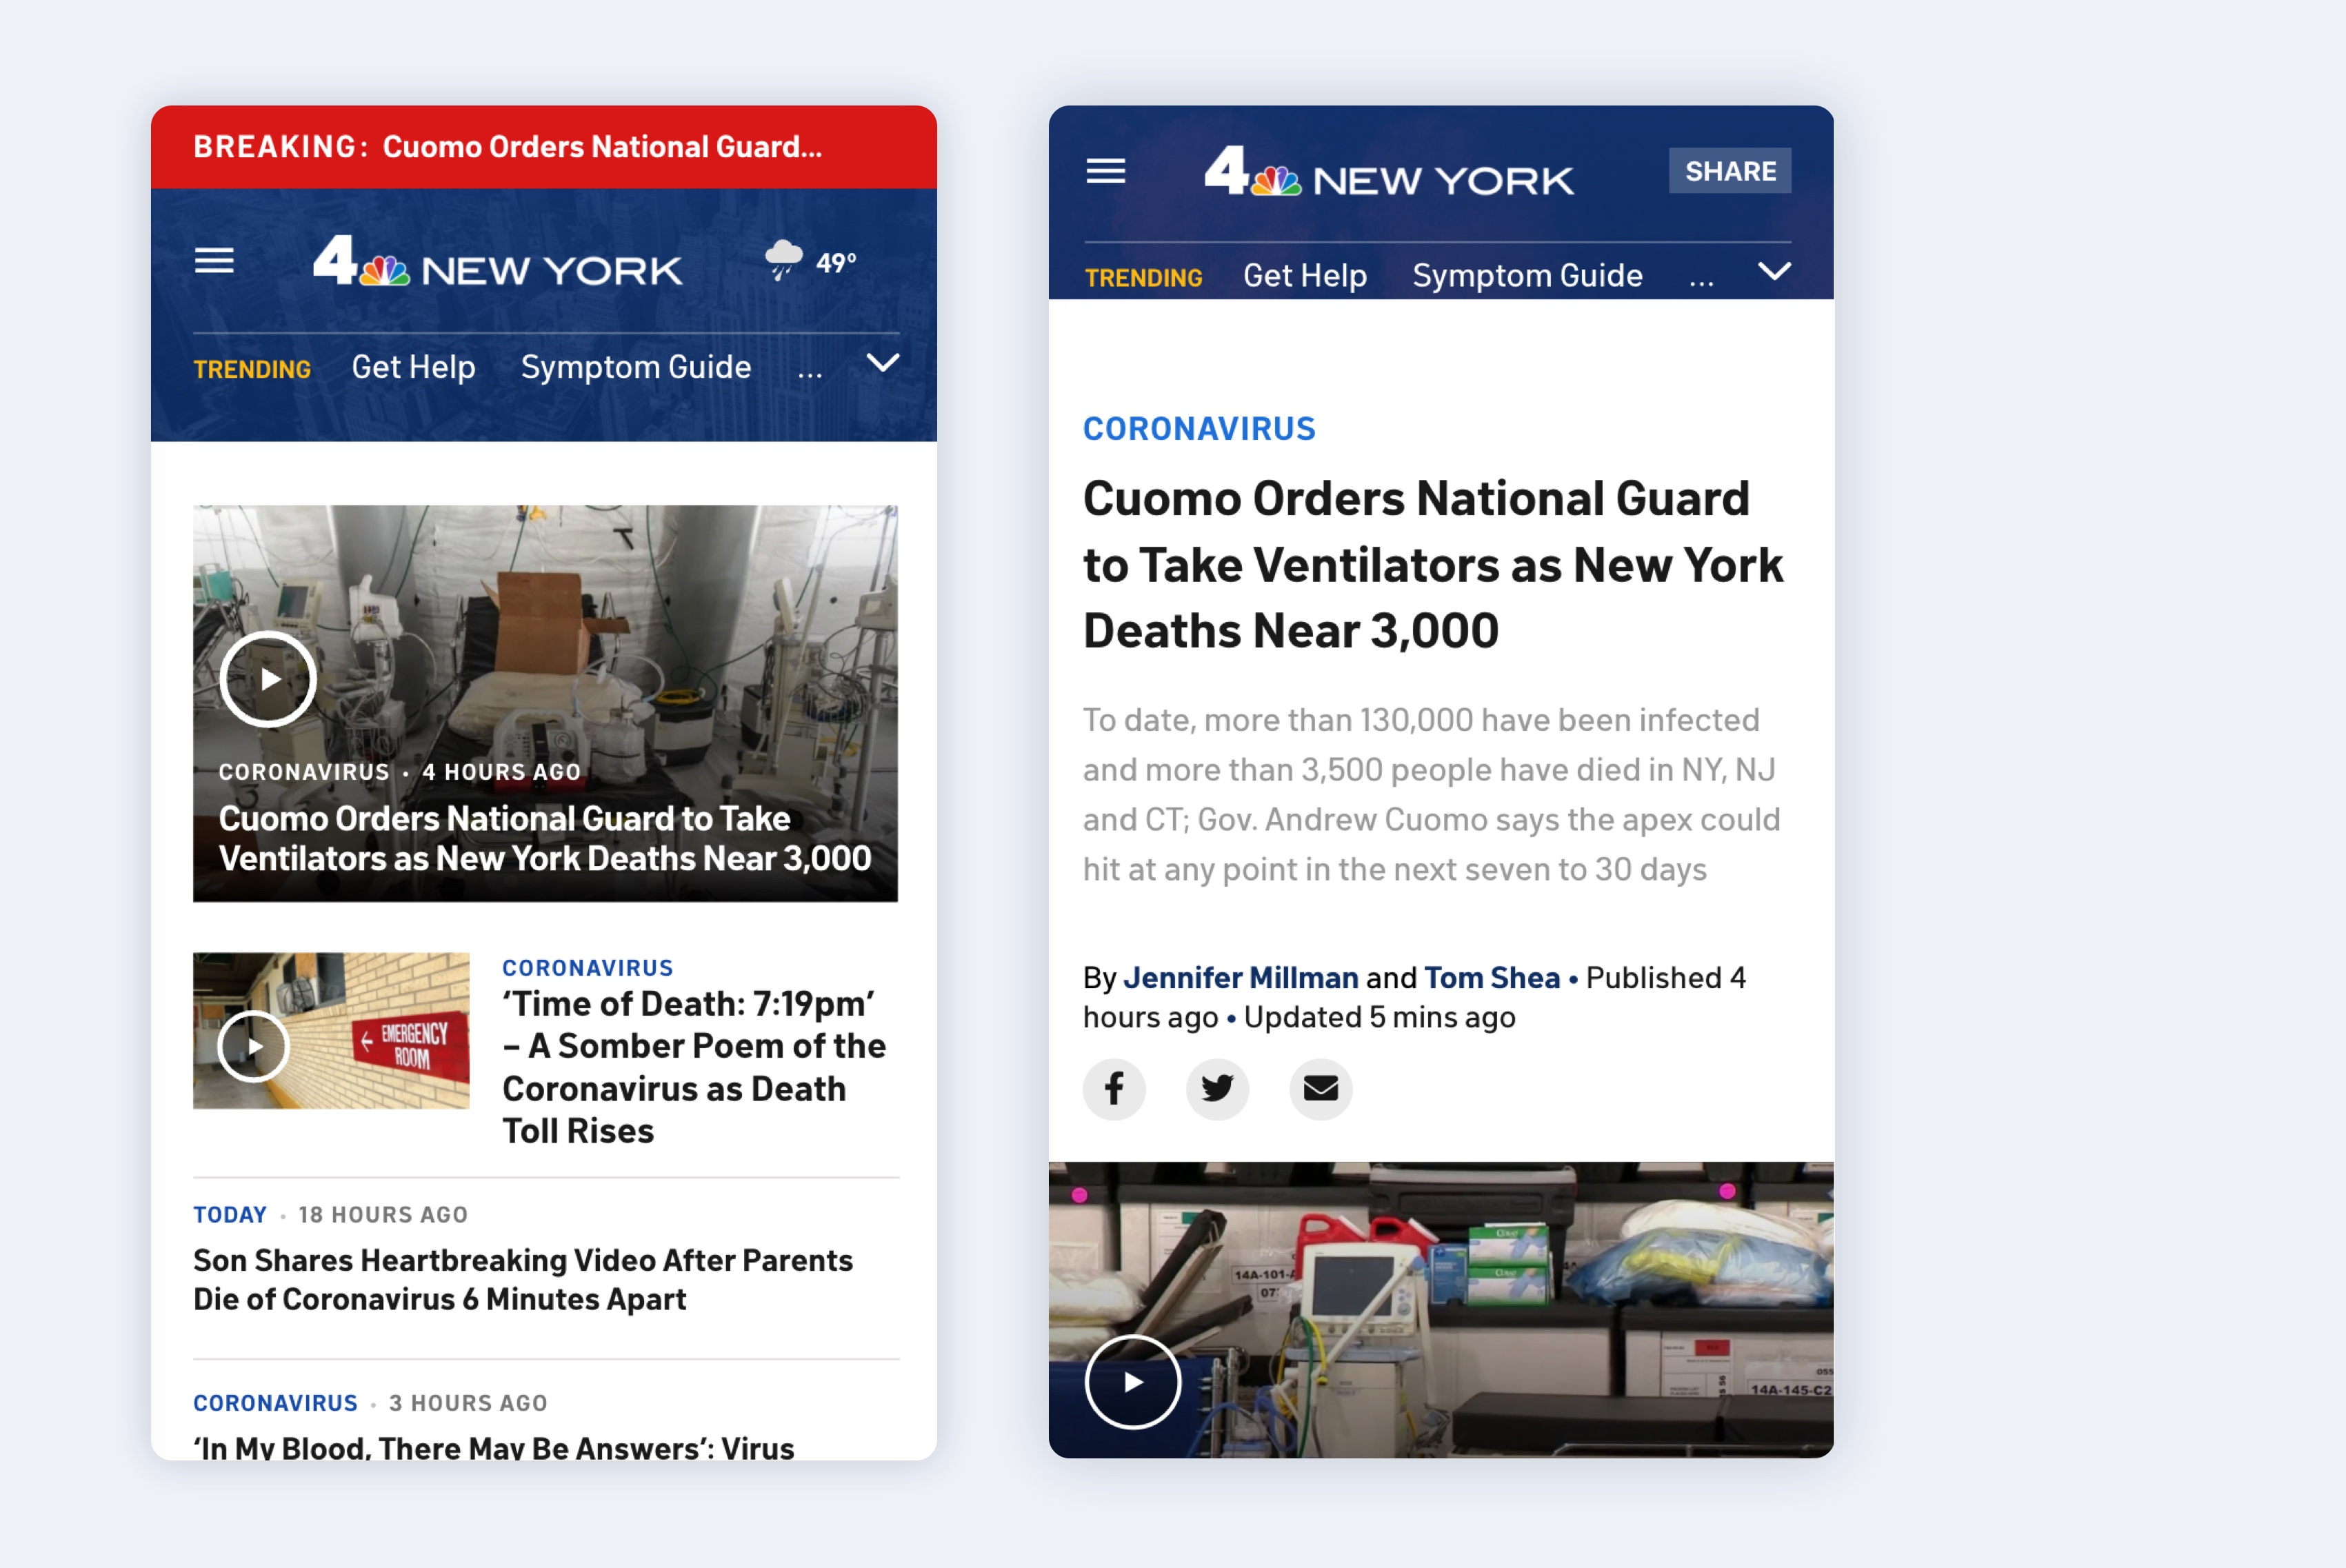 Mobile views of NBC 4 New York site with video thumbnails and bold headlines in a red and blue color scheme